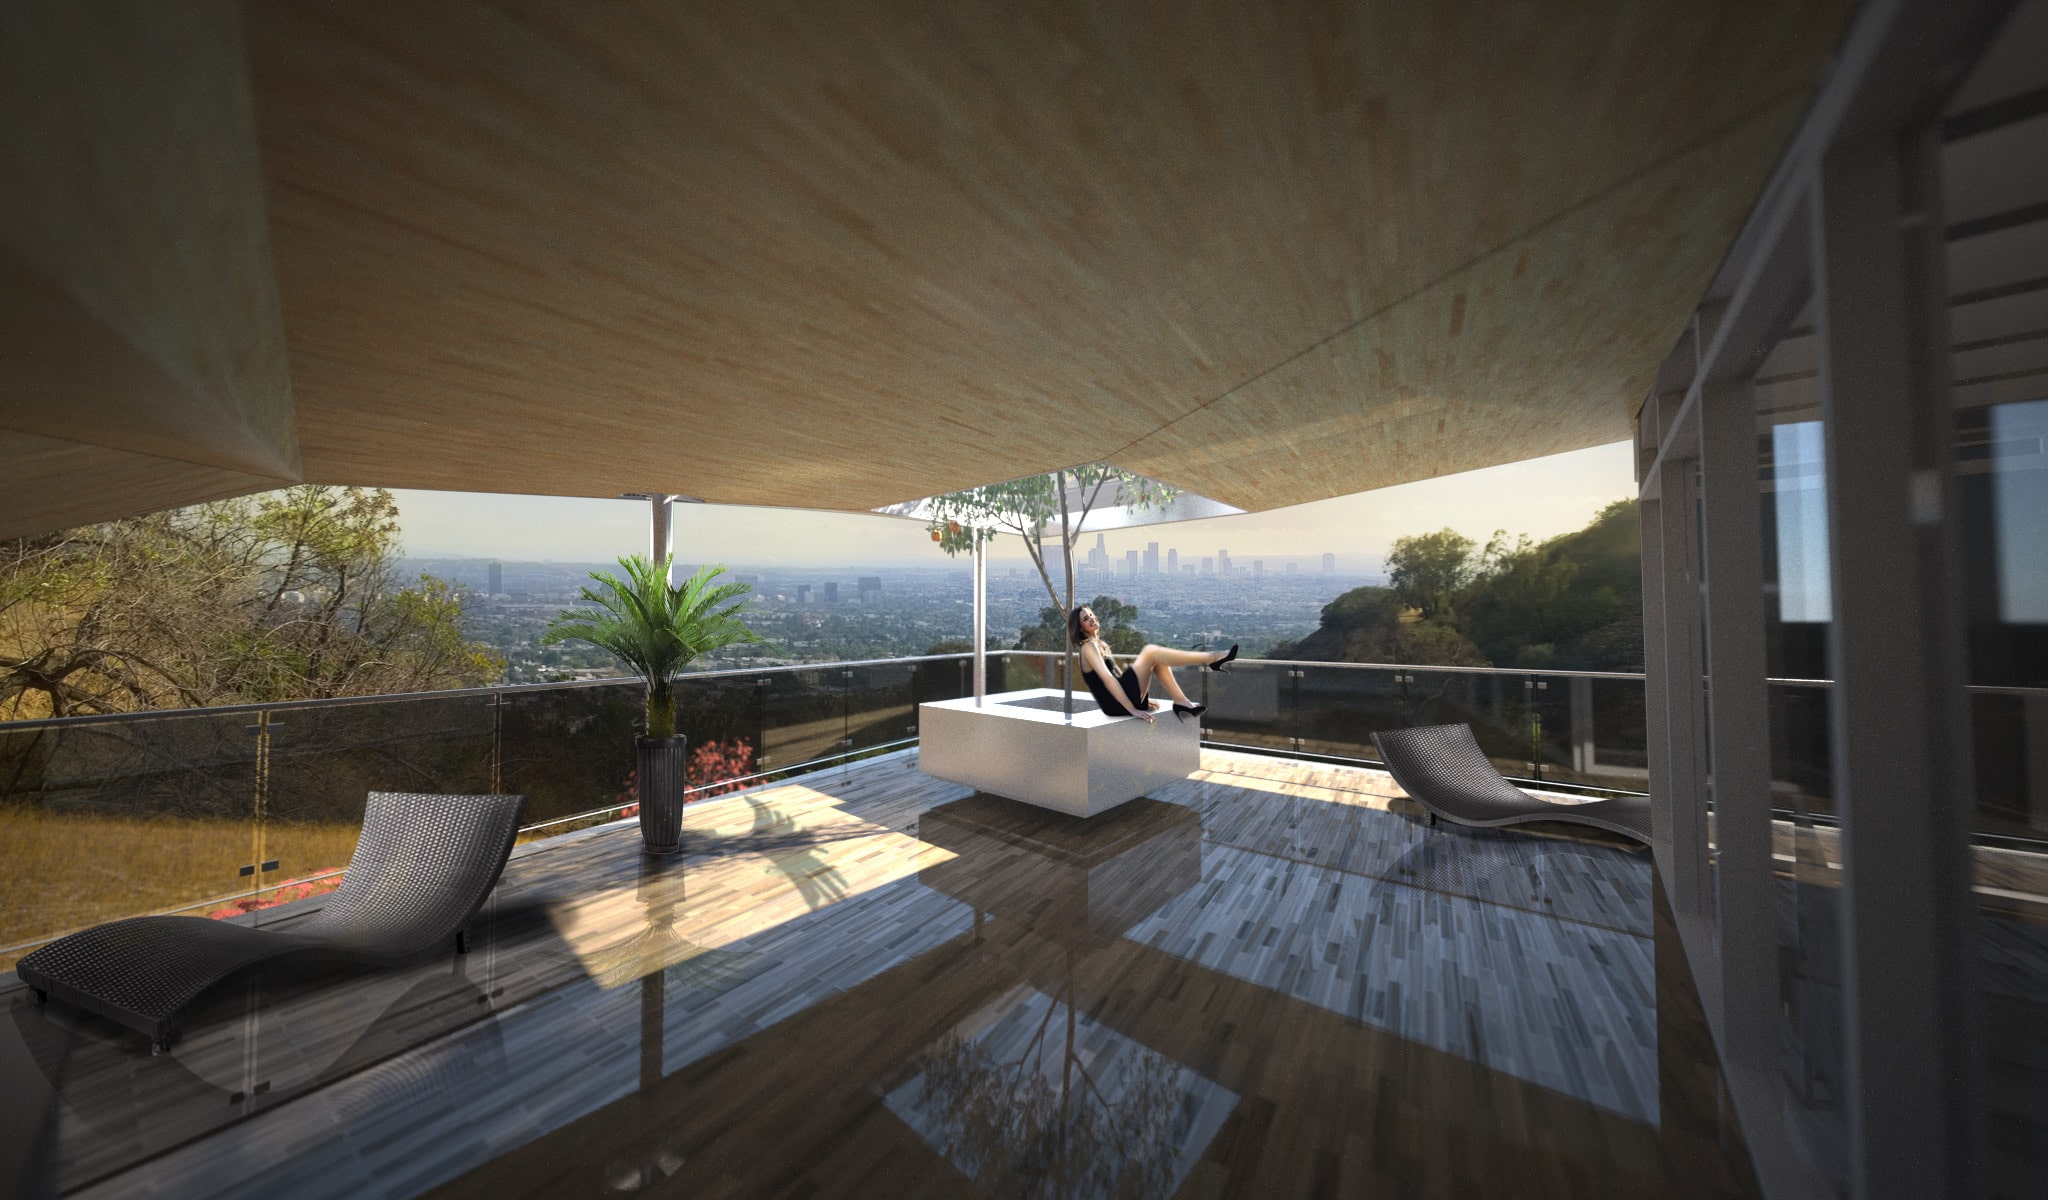 Latest Architectural Spaces - Valentine Custom Residence - Montecito heights, Los Angeles, CA.